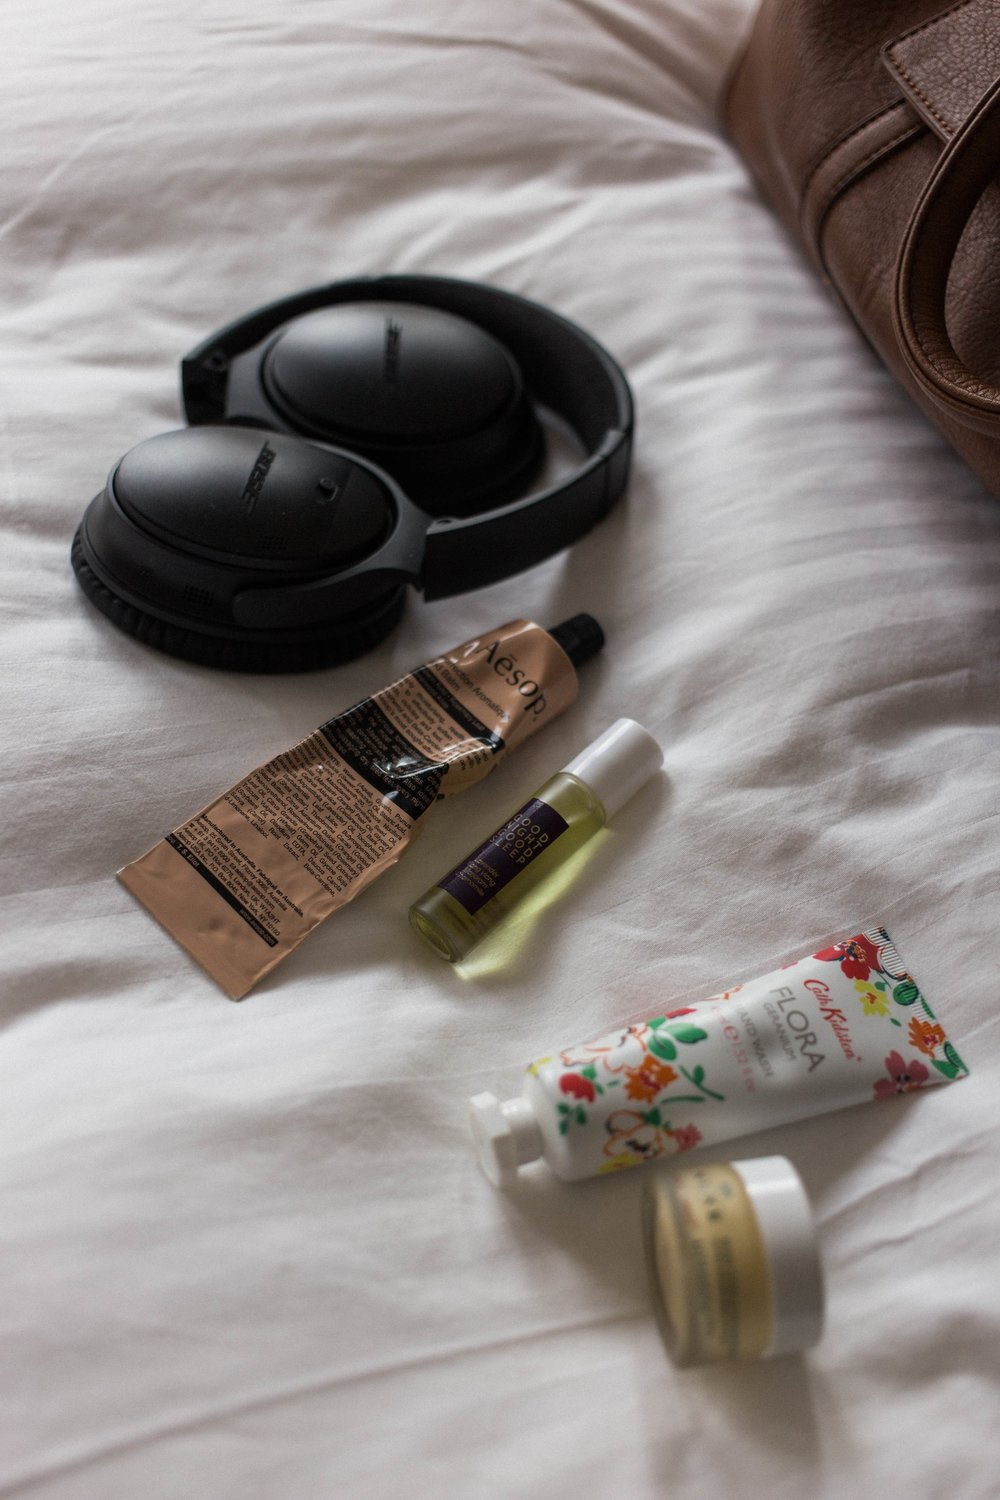 Carry-On Essentials for the Anxious Flyer | On the Street Where We Live (aretherelilactrees.com)